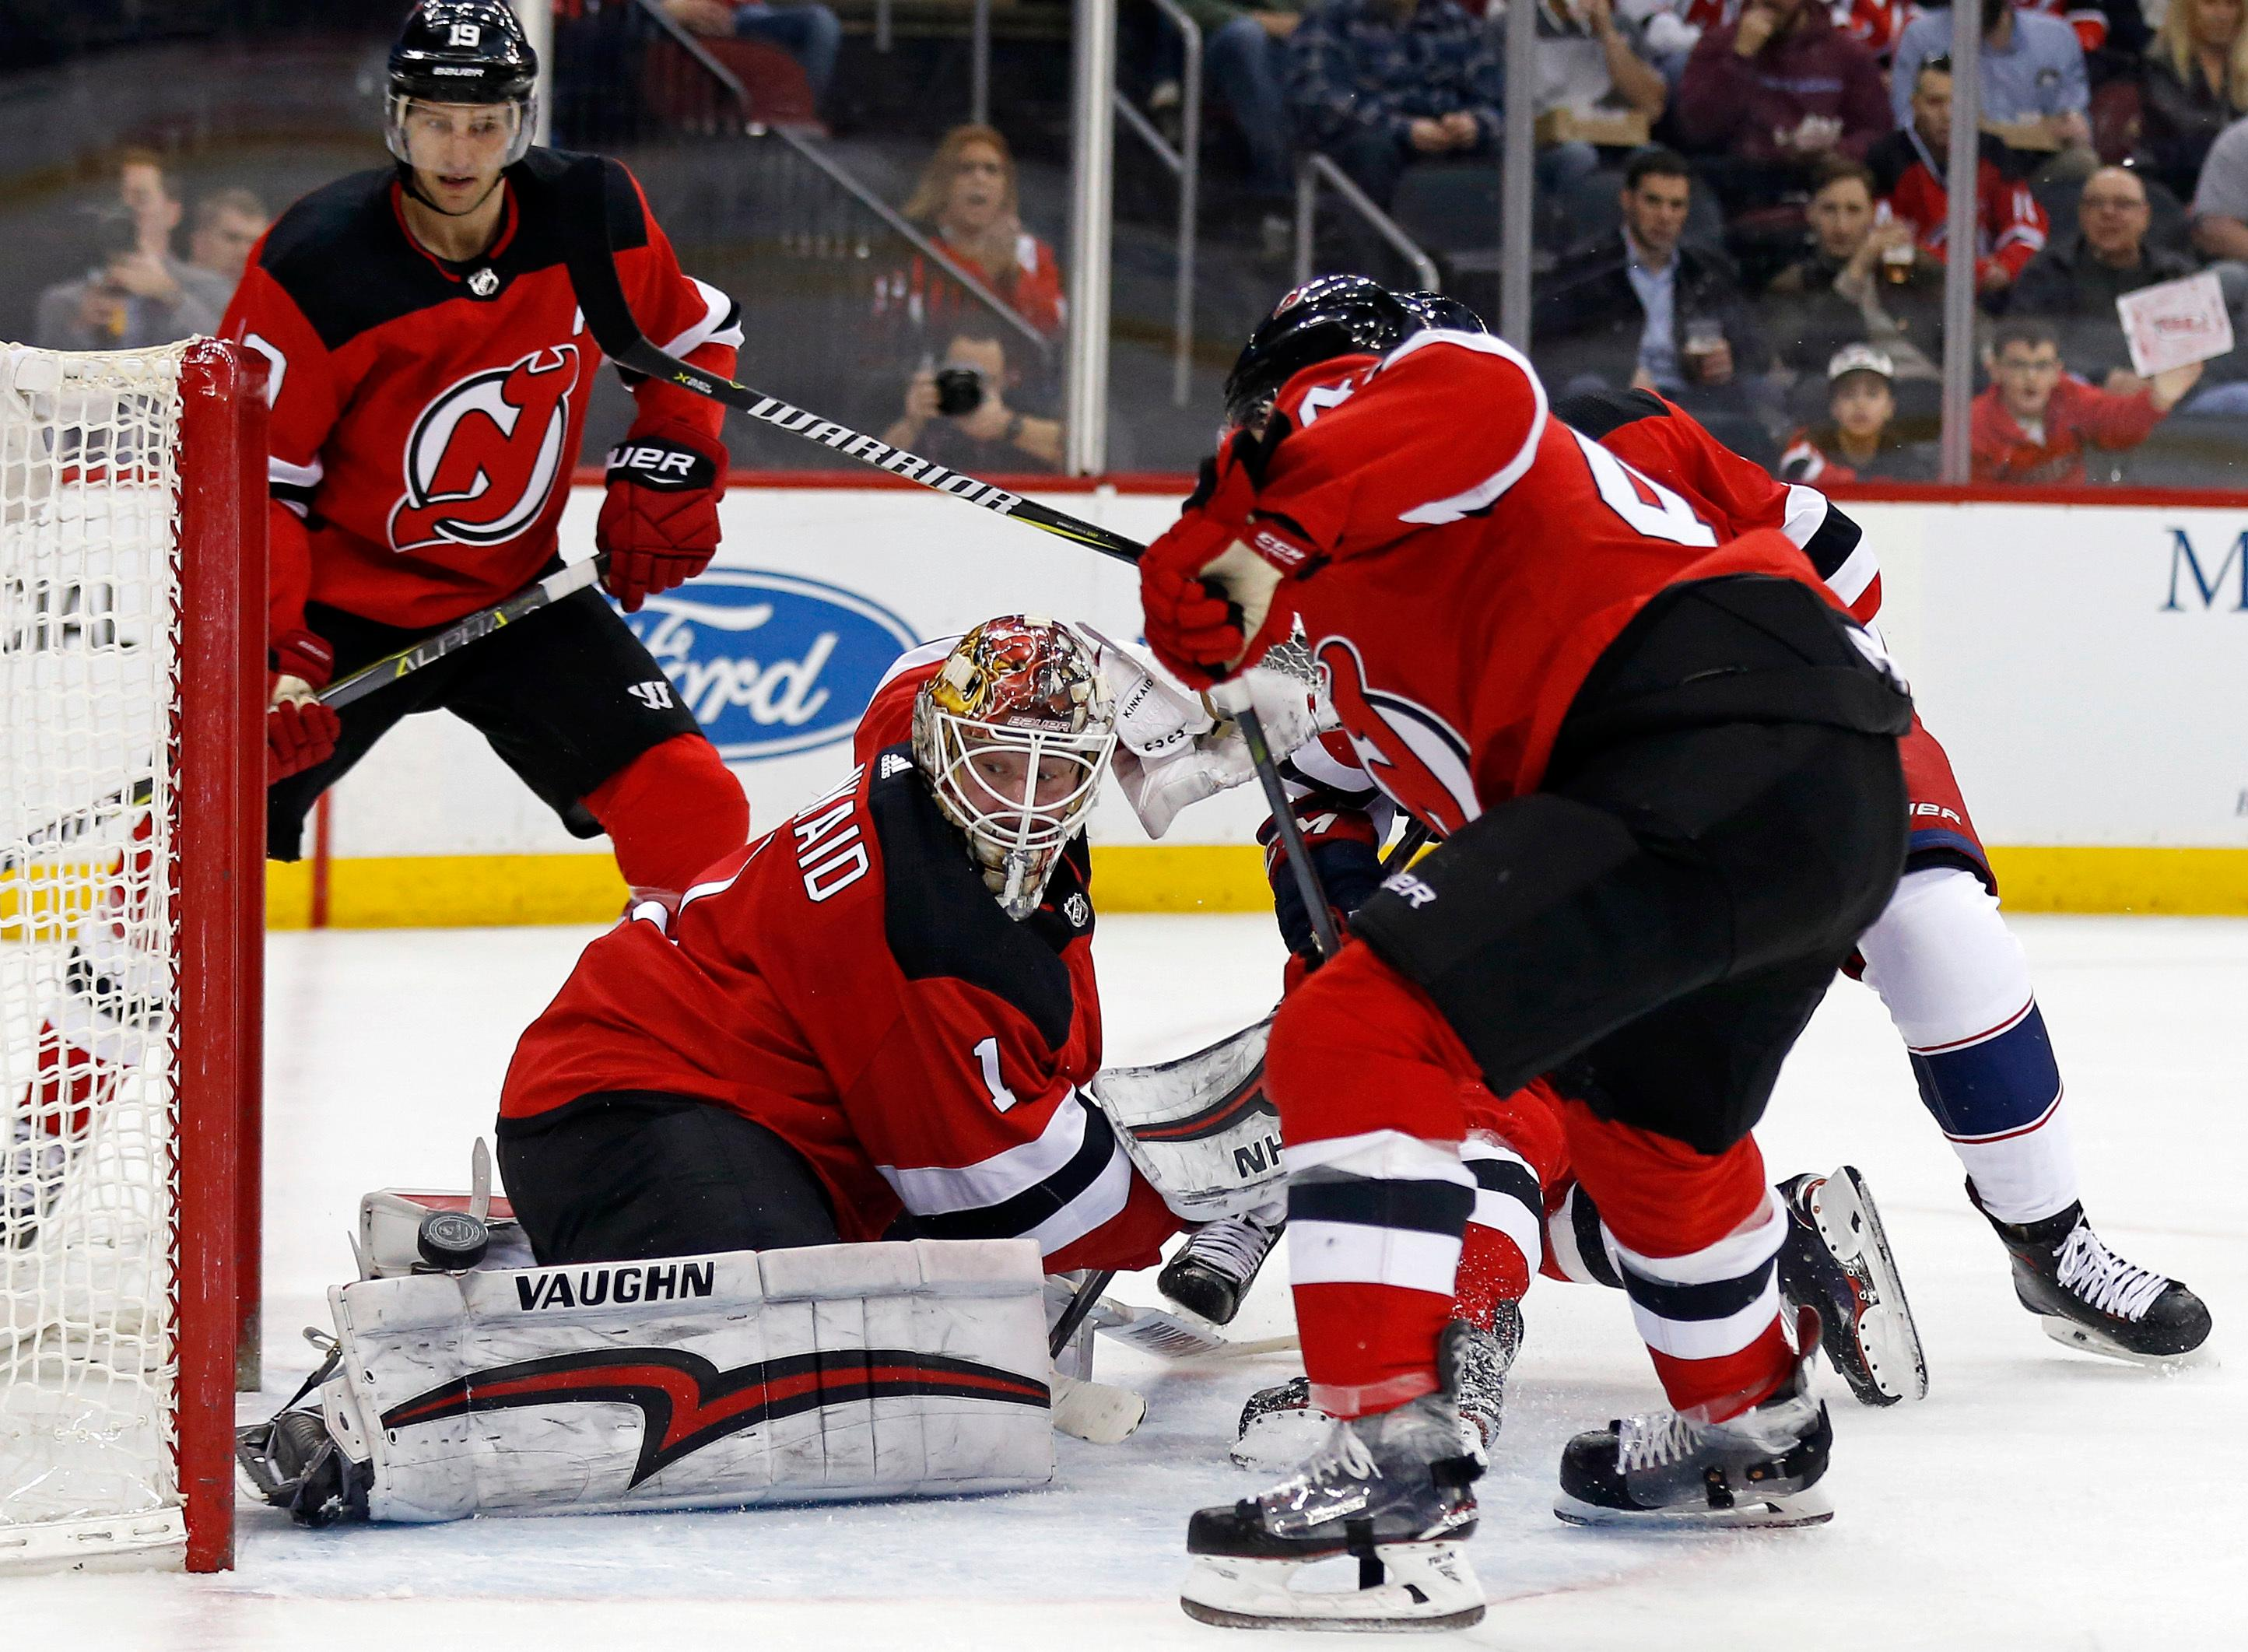 New Jersey Devils goaltender Keith Kinkaid (1) makes a save against the Columbus Blue Jackets during the first period of an NHL hockey game Tuesday, Feb. 20, 2018, in Newark, N.J. (AP Photo/Adam Hunger)